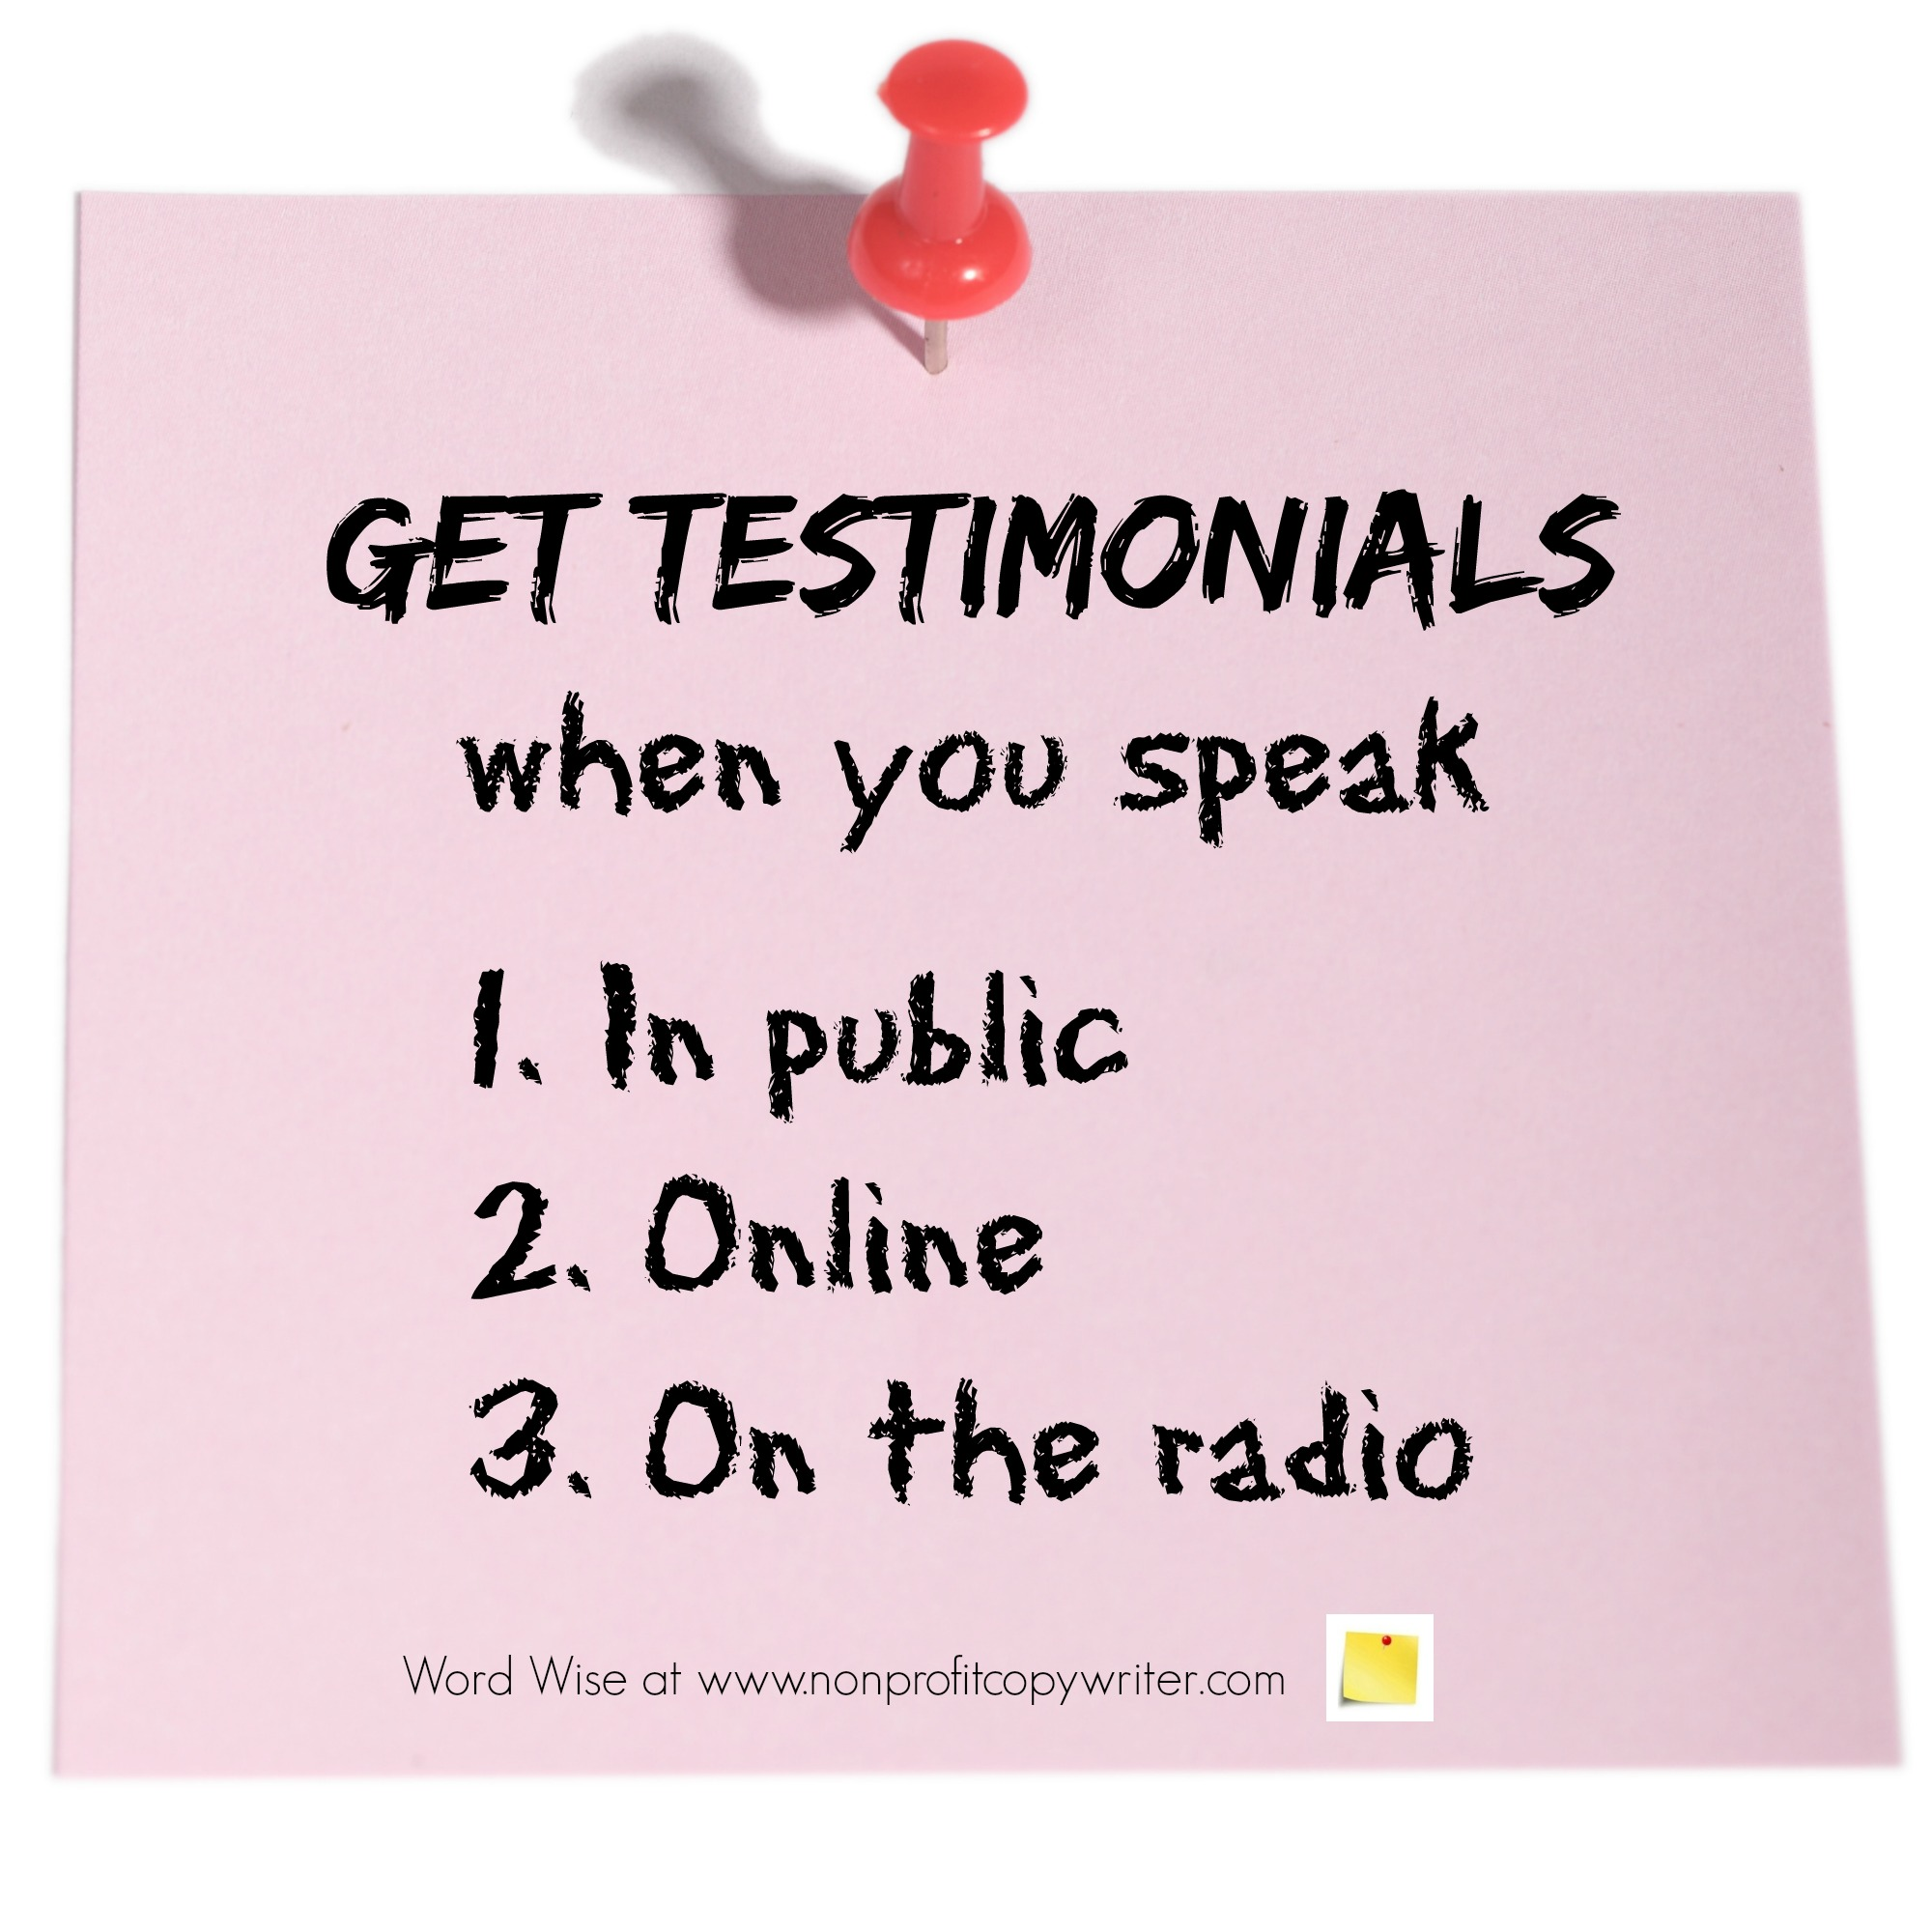 Get testimonials when you speak with Word Wise at Nonprofit Copywriter